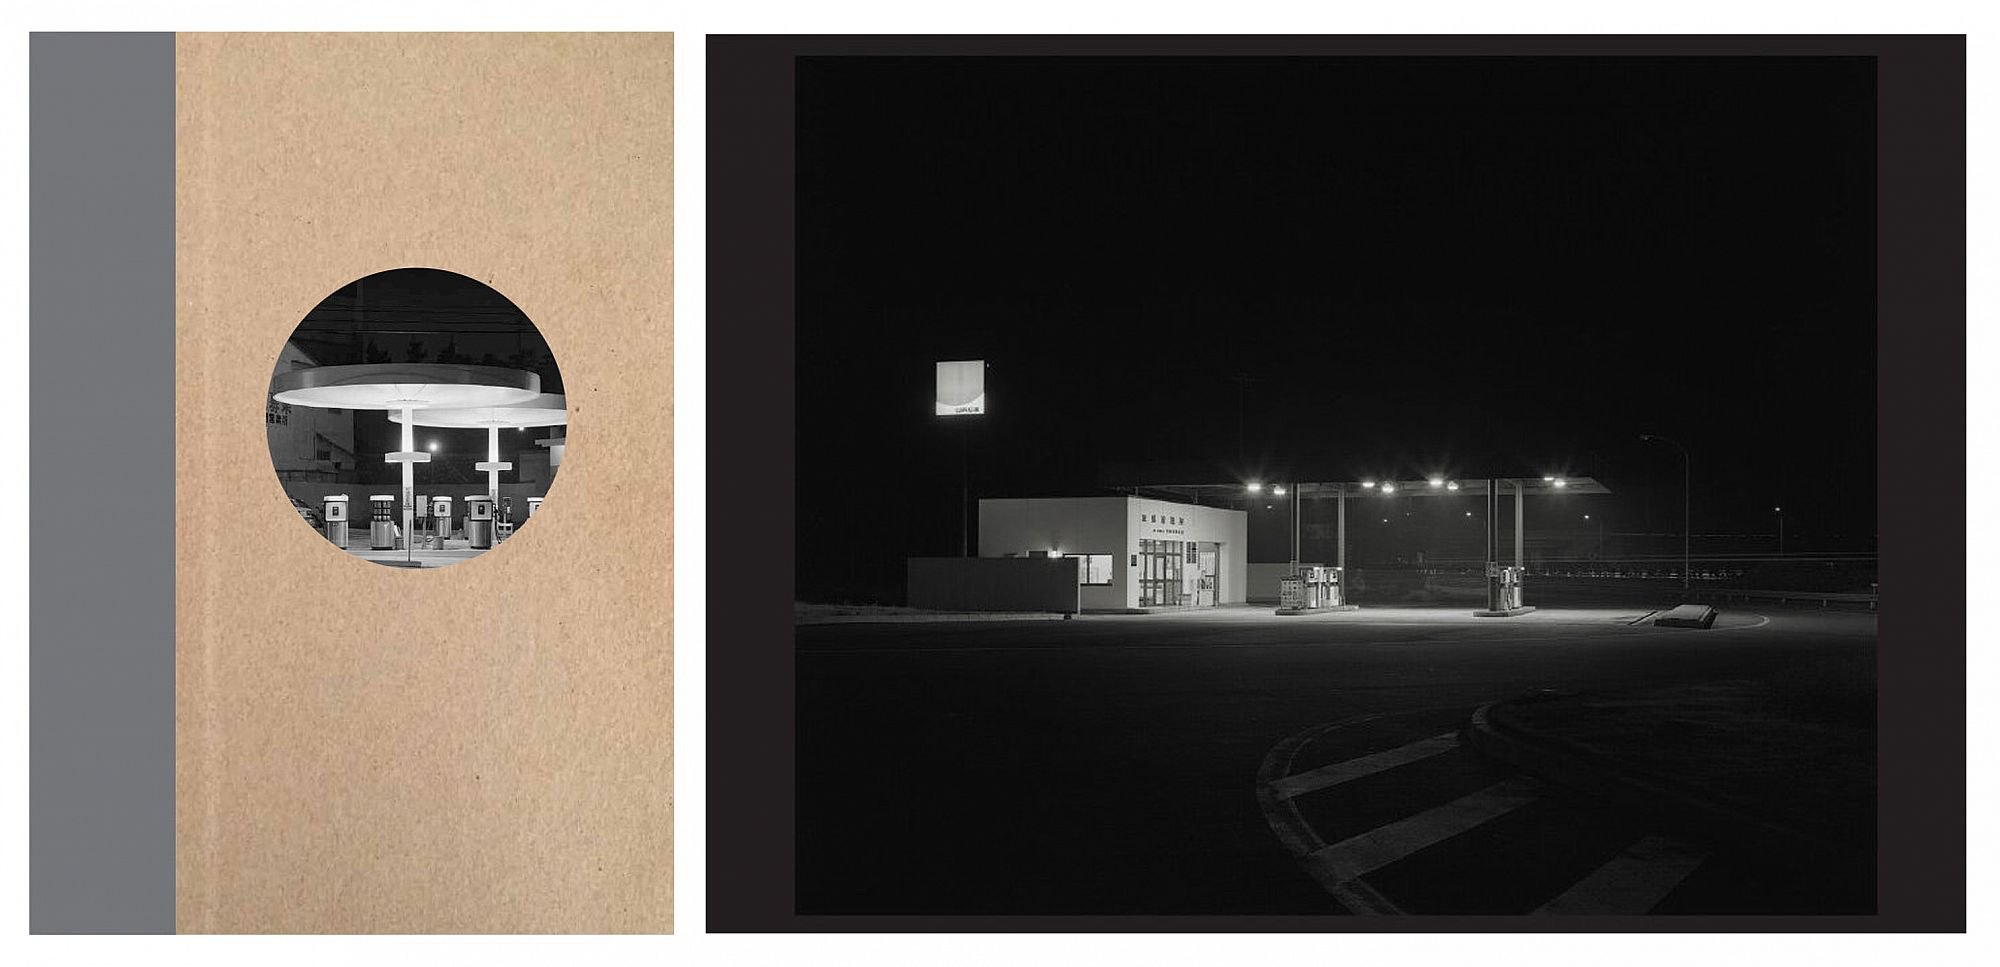 Nazraeli Press One Picture Book Two Series, Set 4: #13-16, Limited Edition(s) (with 4 Prints): Toshio Shibata: Gas Stations; Manjari Sharma: Darshan; Kenro Izu: Requiem; Mark Steinmetz: Cats